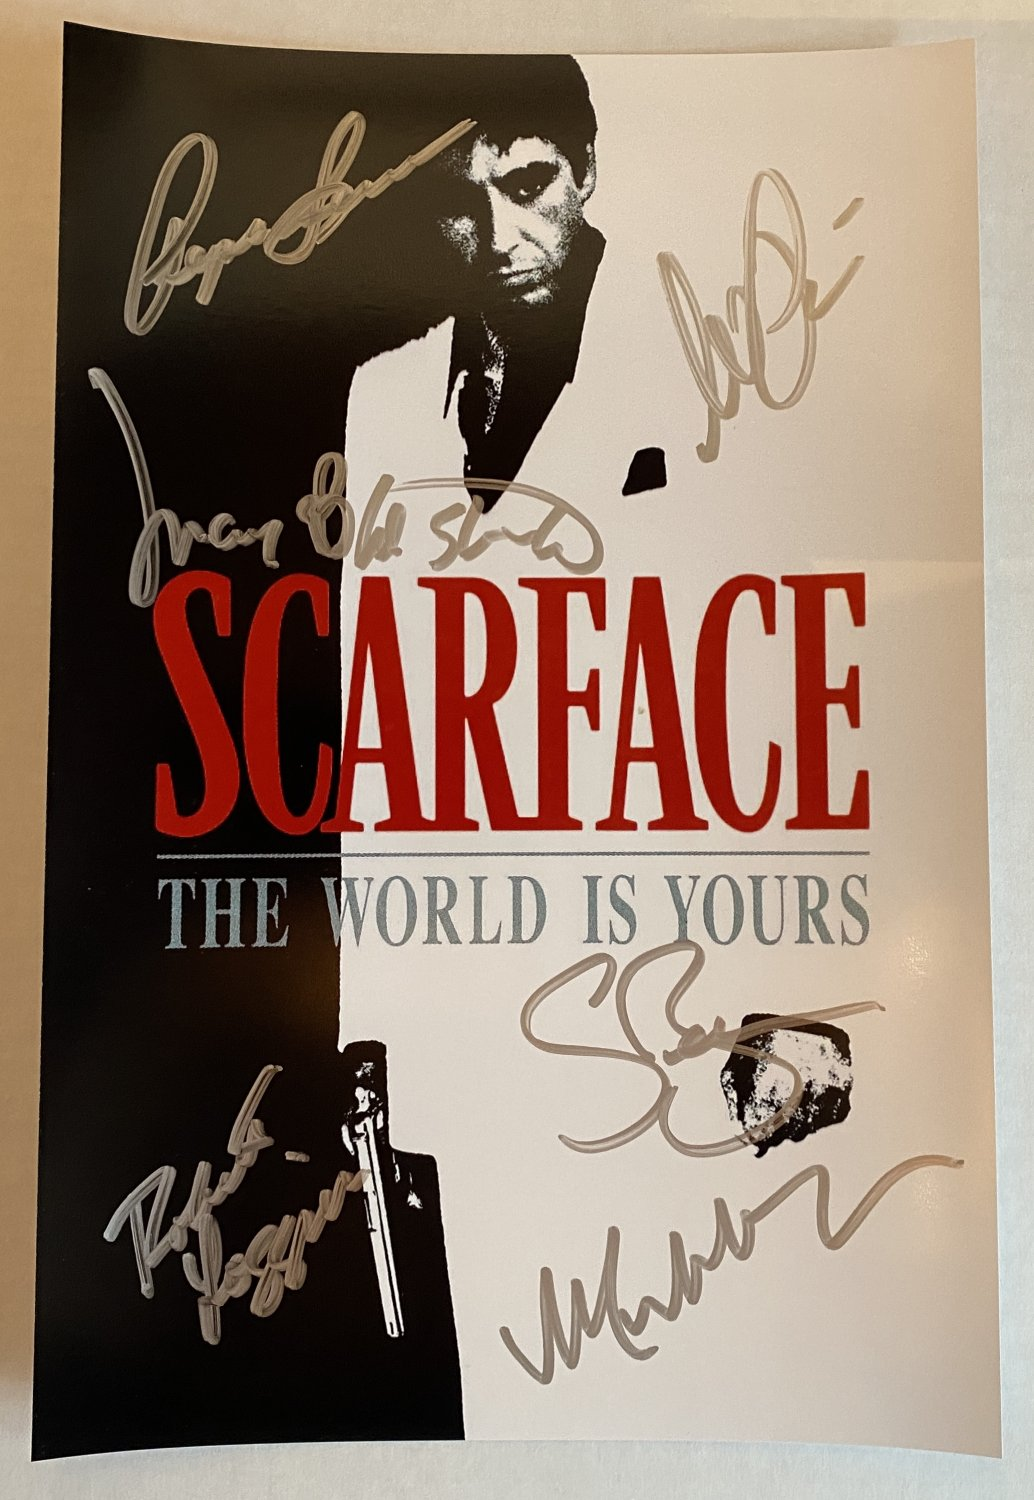 Scarface cast signed autographed 8x12 photo Al Pacino Michelle Pfeiffer